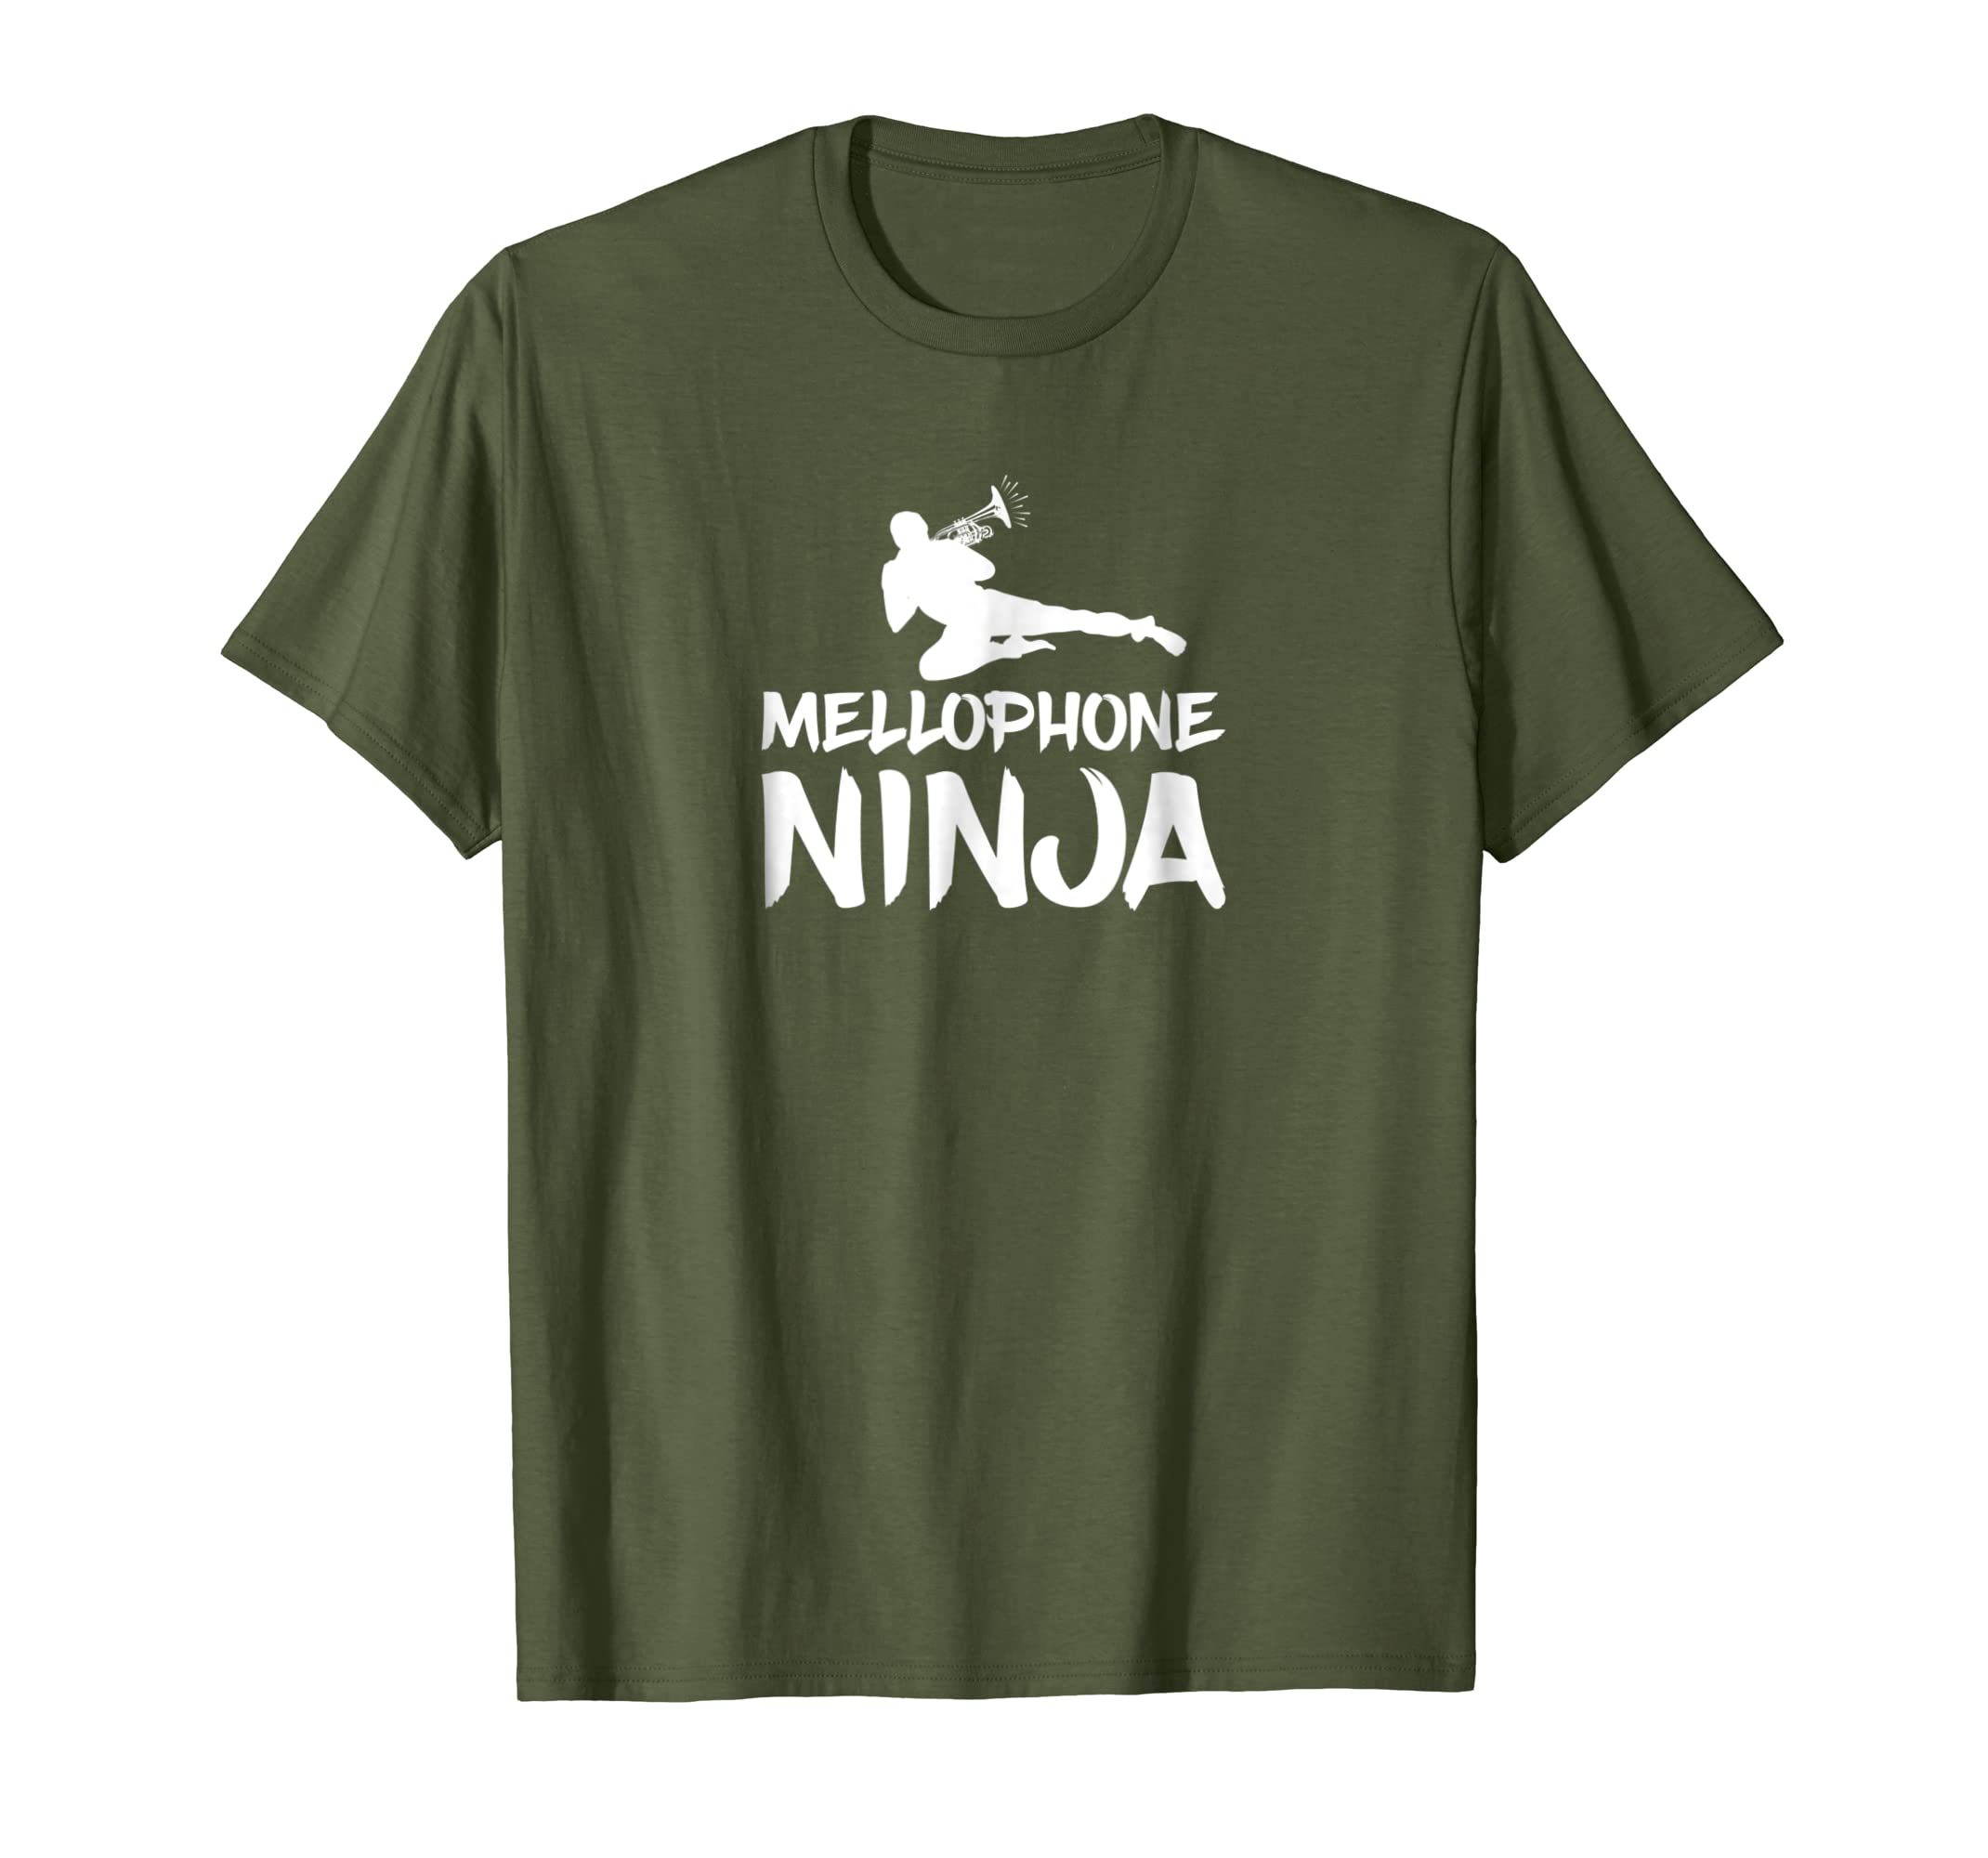 9f478bf4d5dc89 Amazon.com  Mellophone Ninja Marching Band Shirt Camp Funny Matching Tee   Clothing